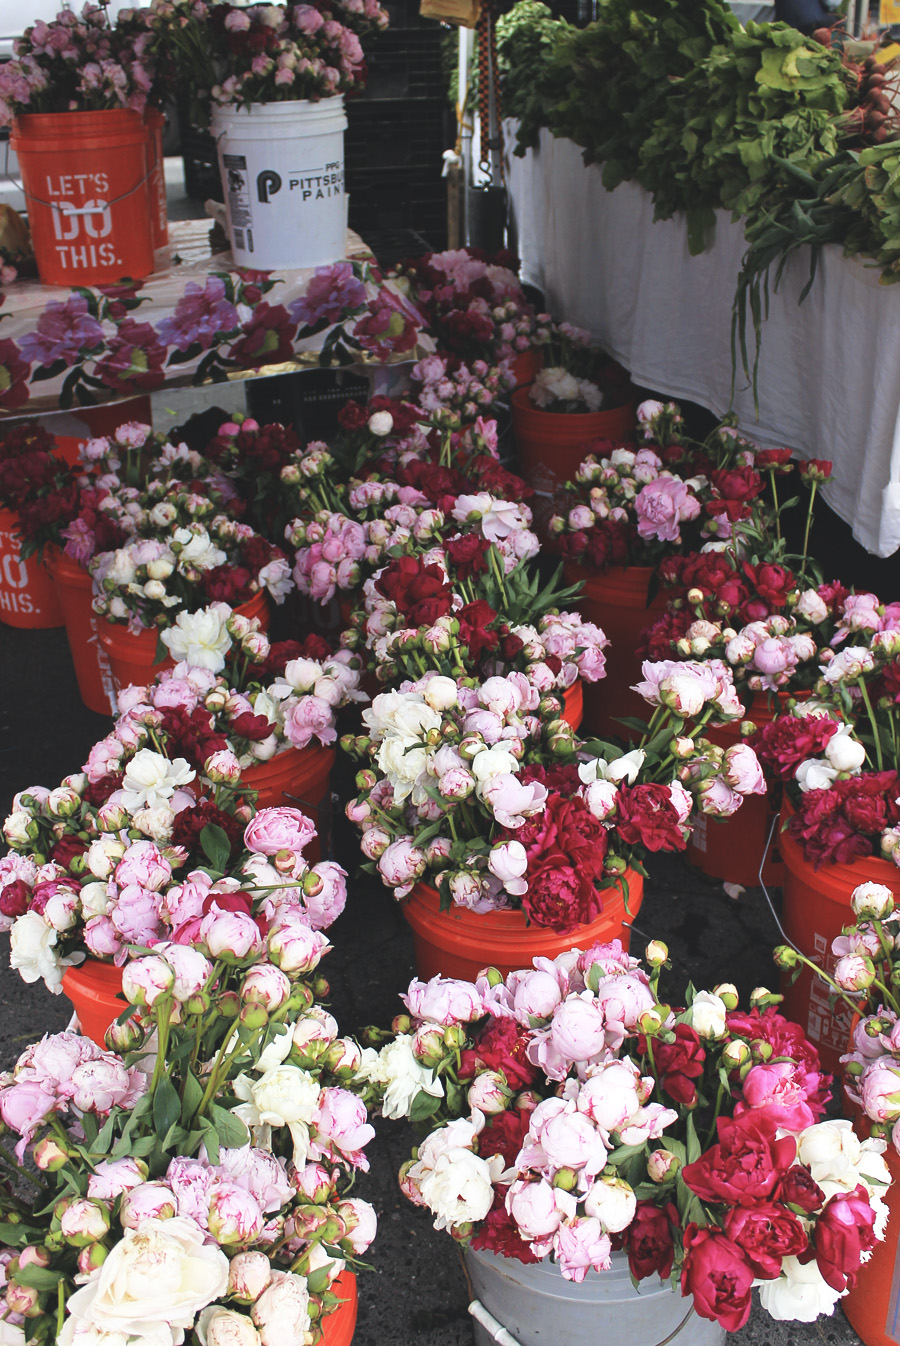 flowers peonies red white pink new york city market